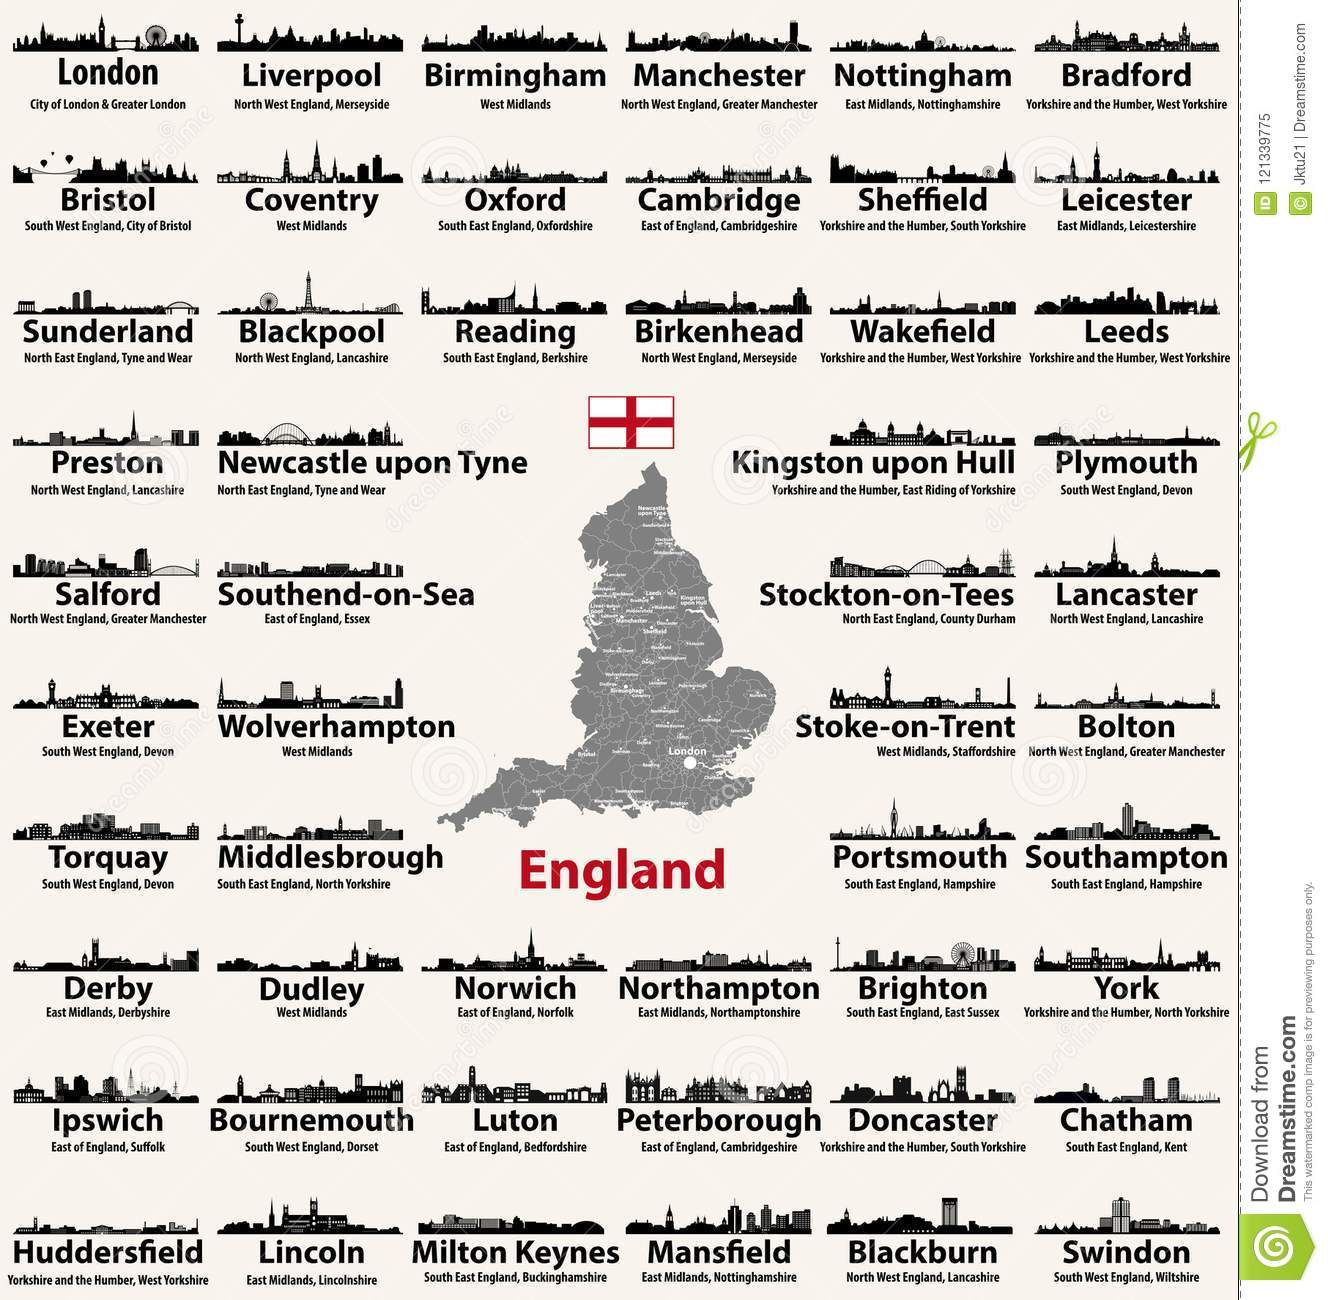 Map Of England Showing Major Cities.England Major Cities Abstract Skylines Silhouettes Icons Map Of